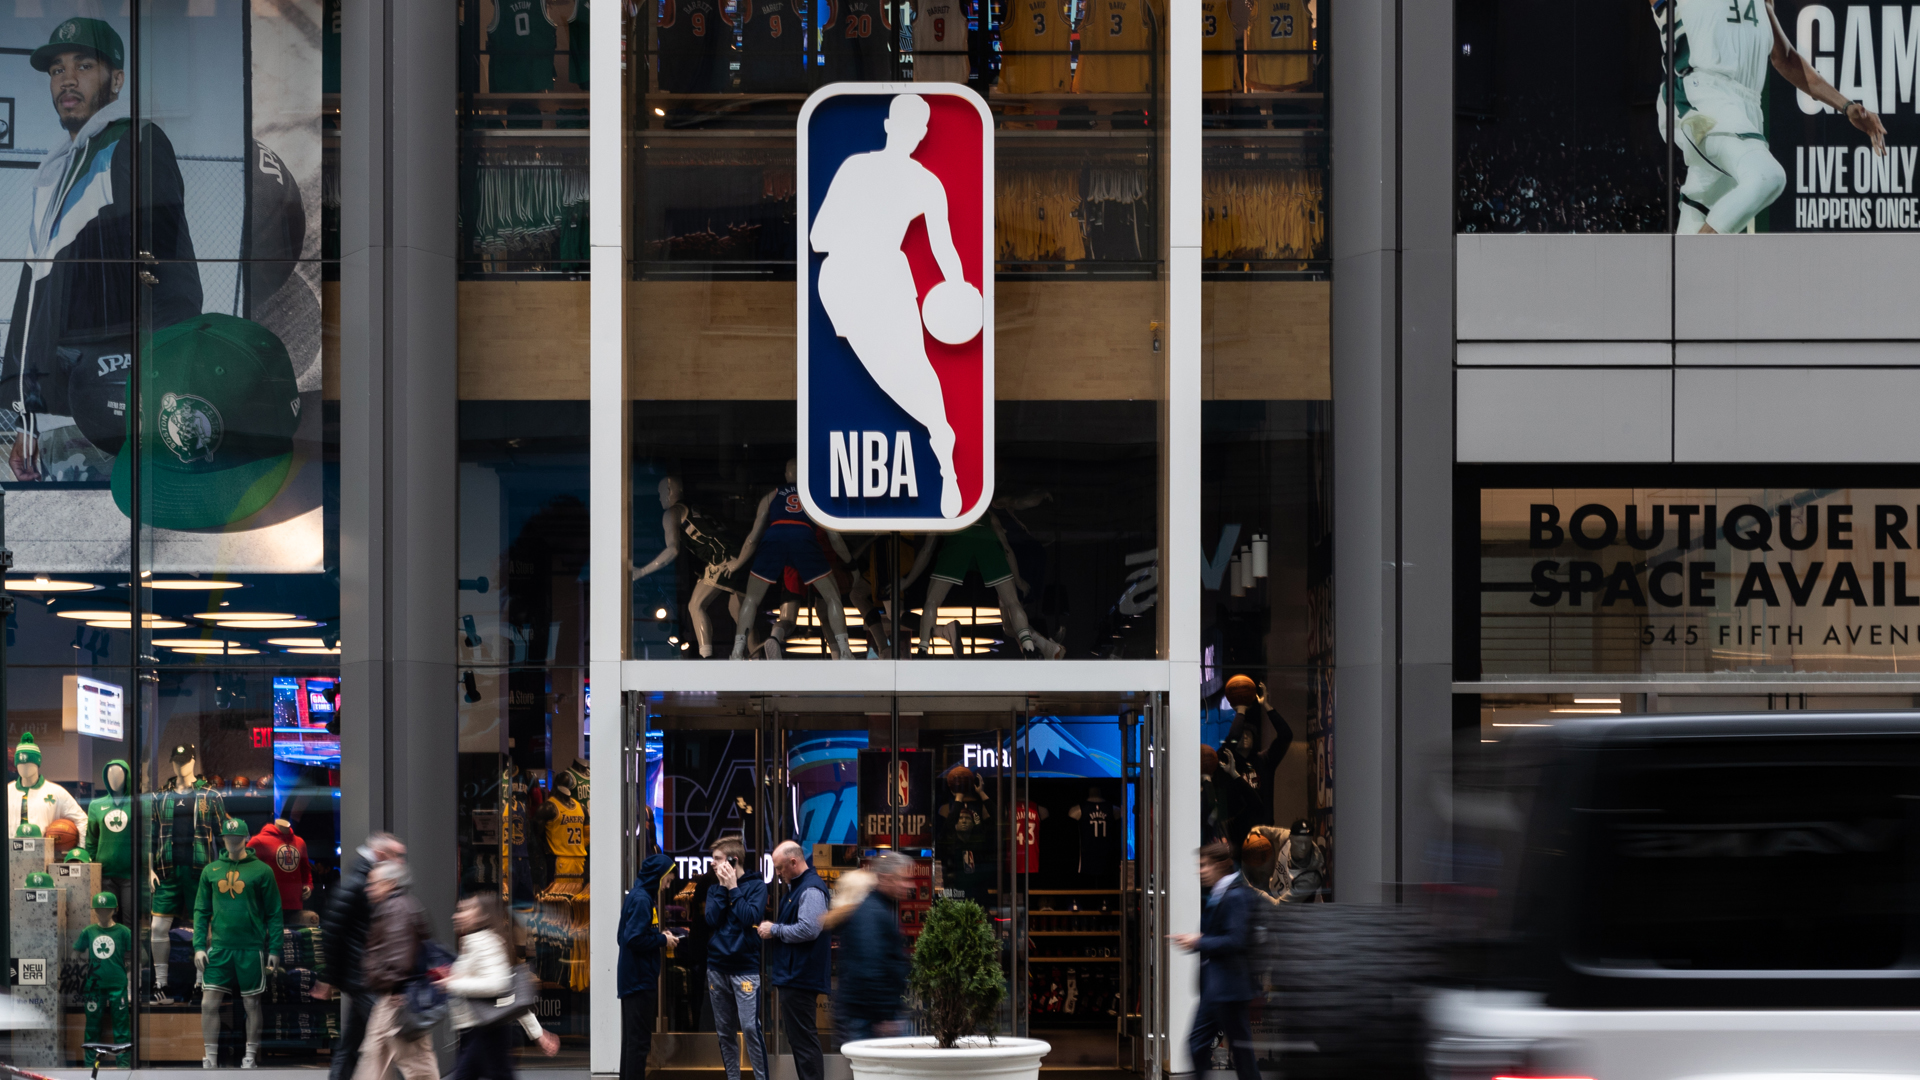 NBA, Knicks, Nets team up to contribute 1 million surgical masks to New York workers - sporting news